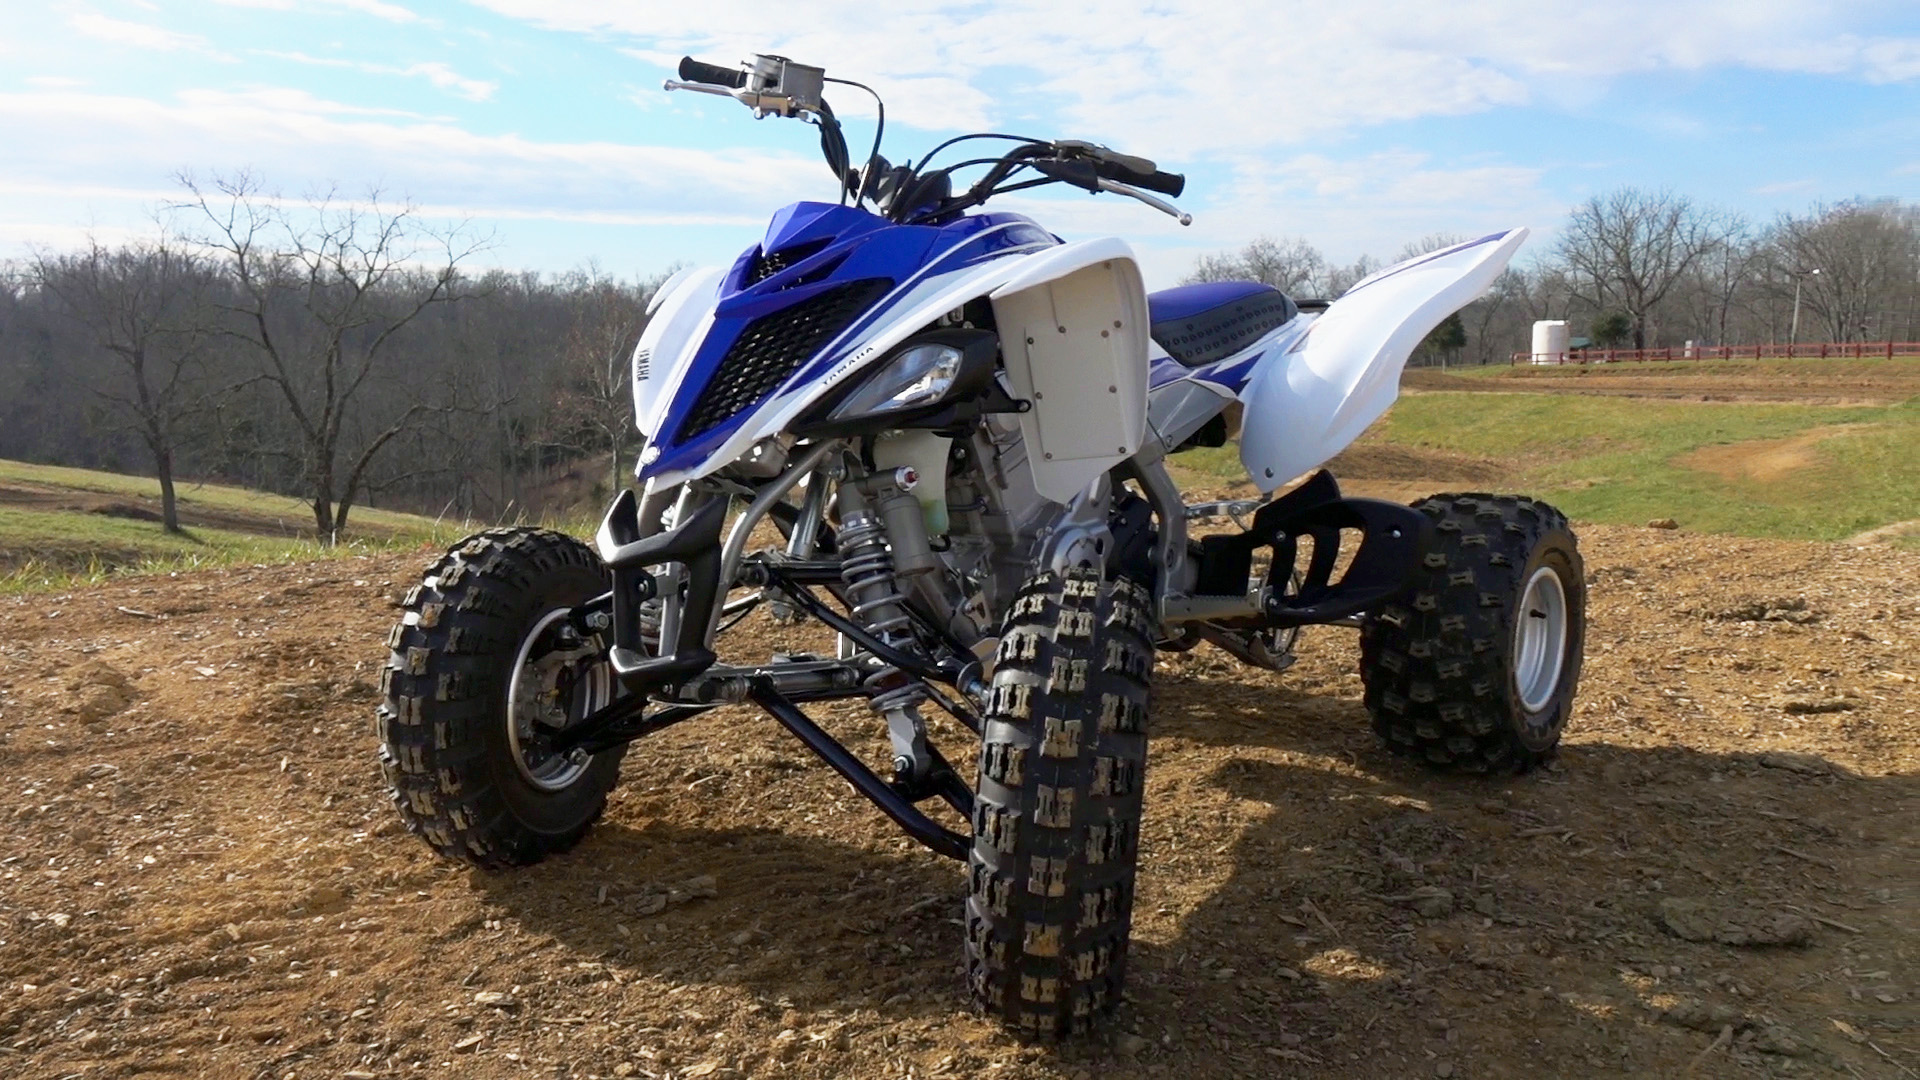 Prototype Yamaha Raptor 700R: Test